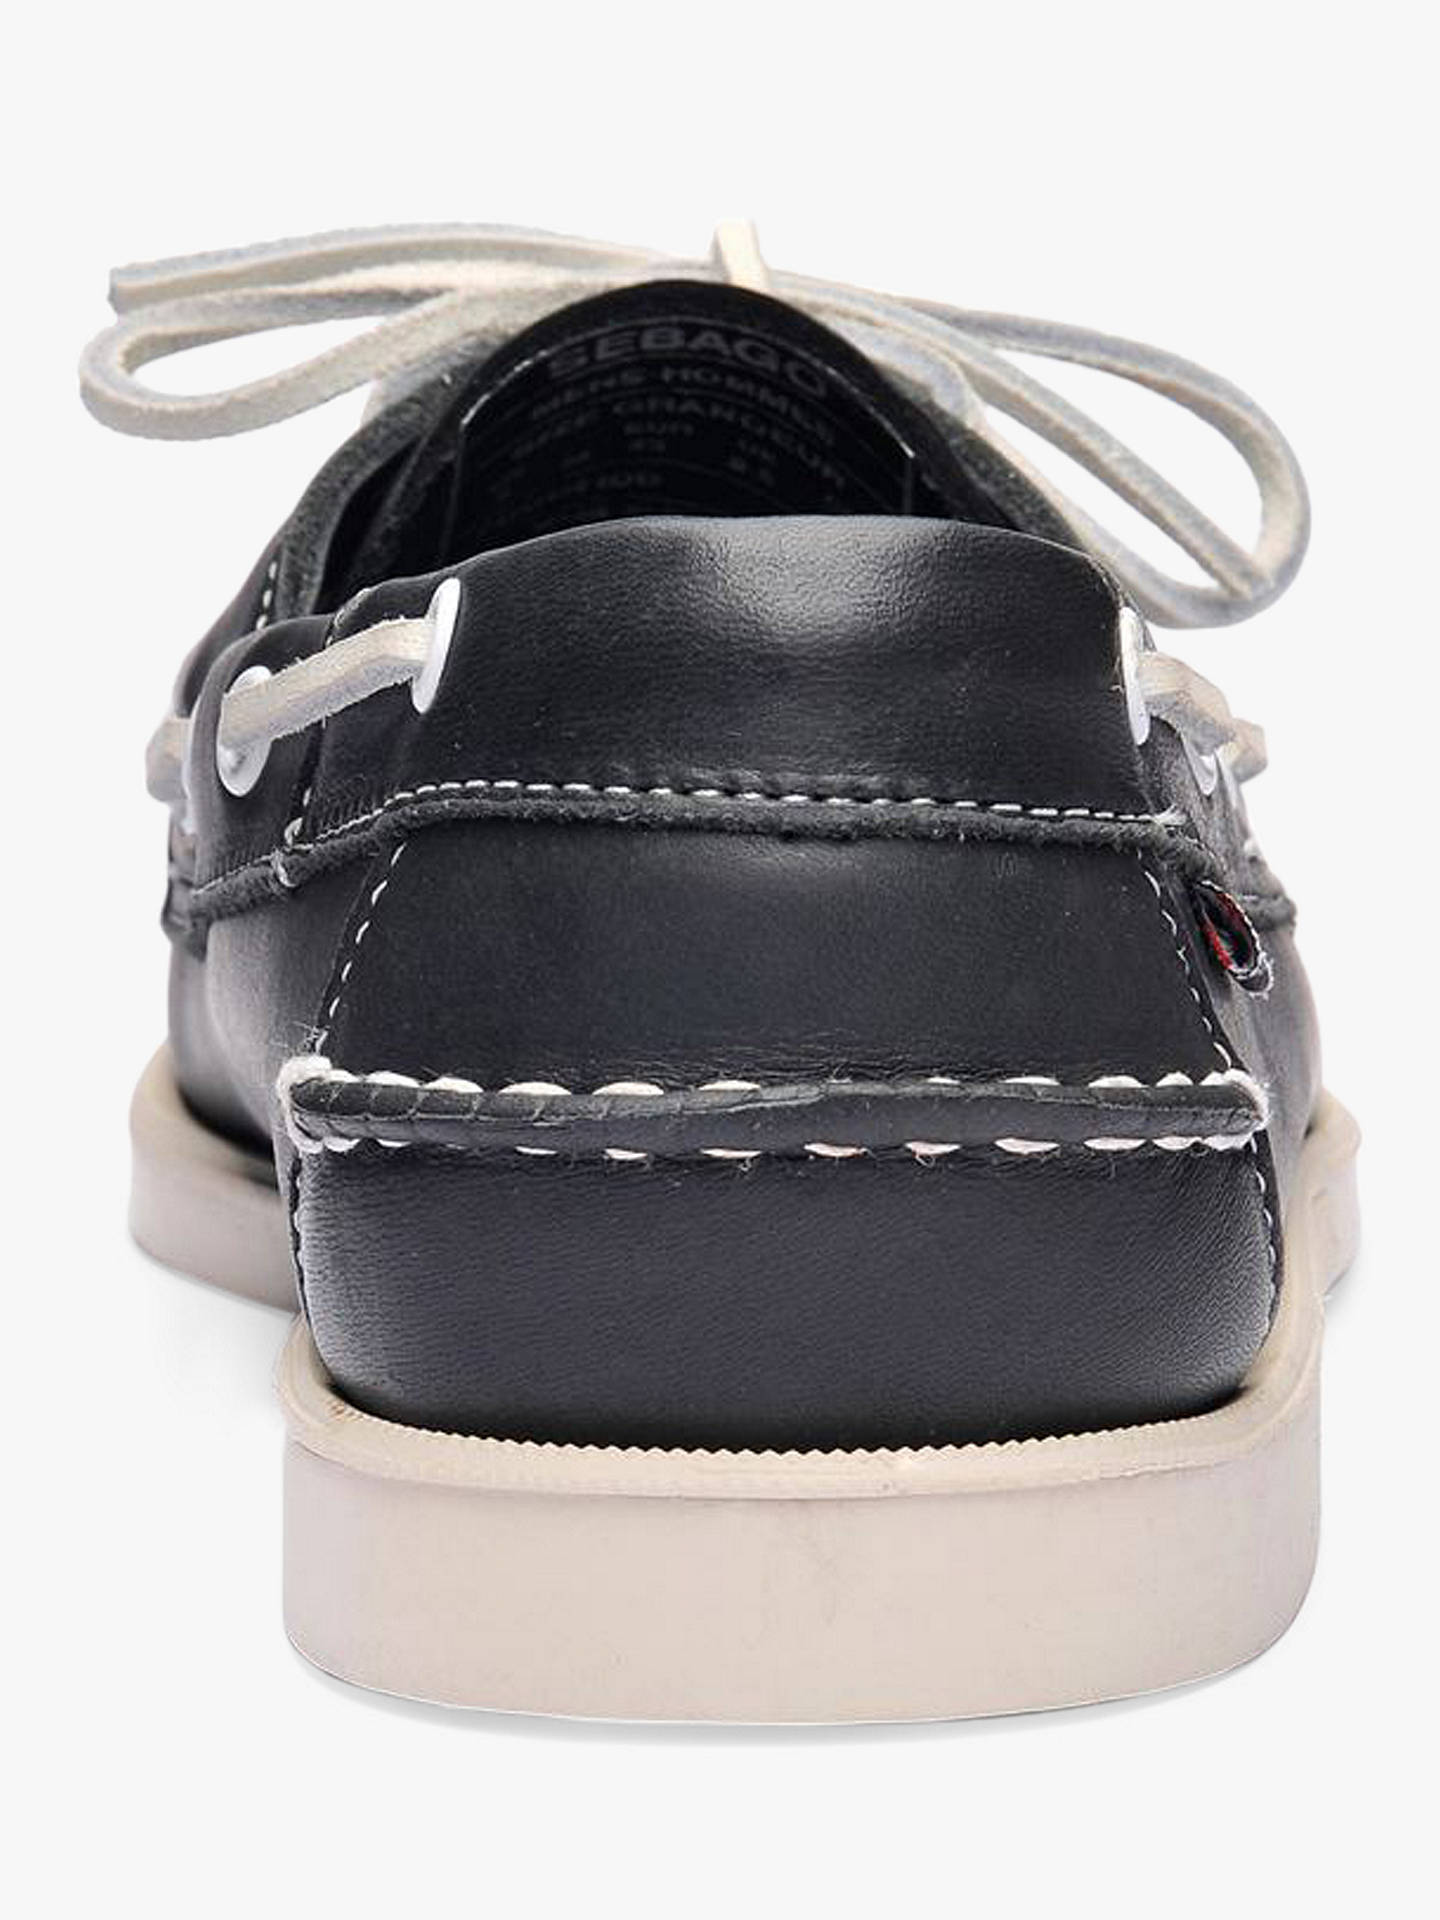 addf1219245 ... Buy Sebago Dockside Portland Leather Boat Shoes